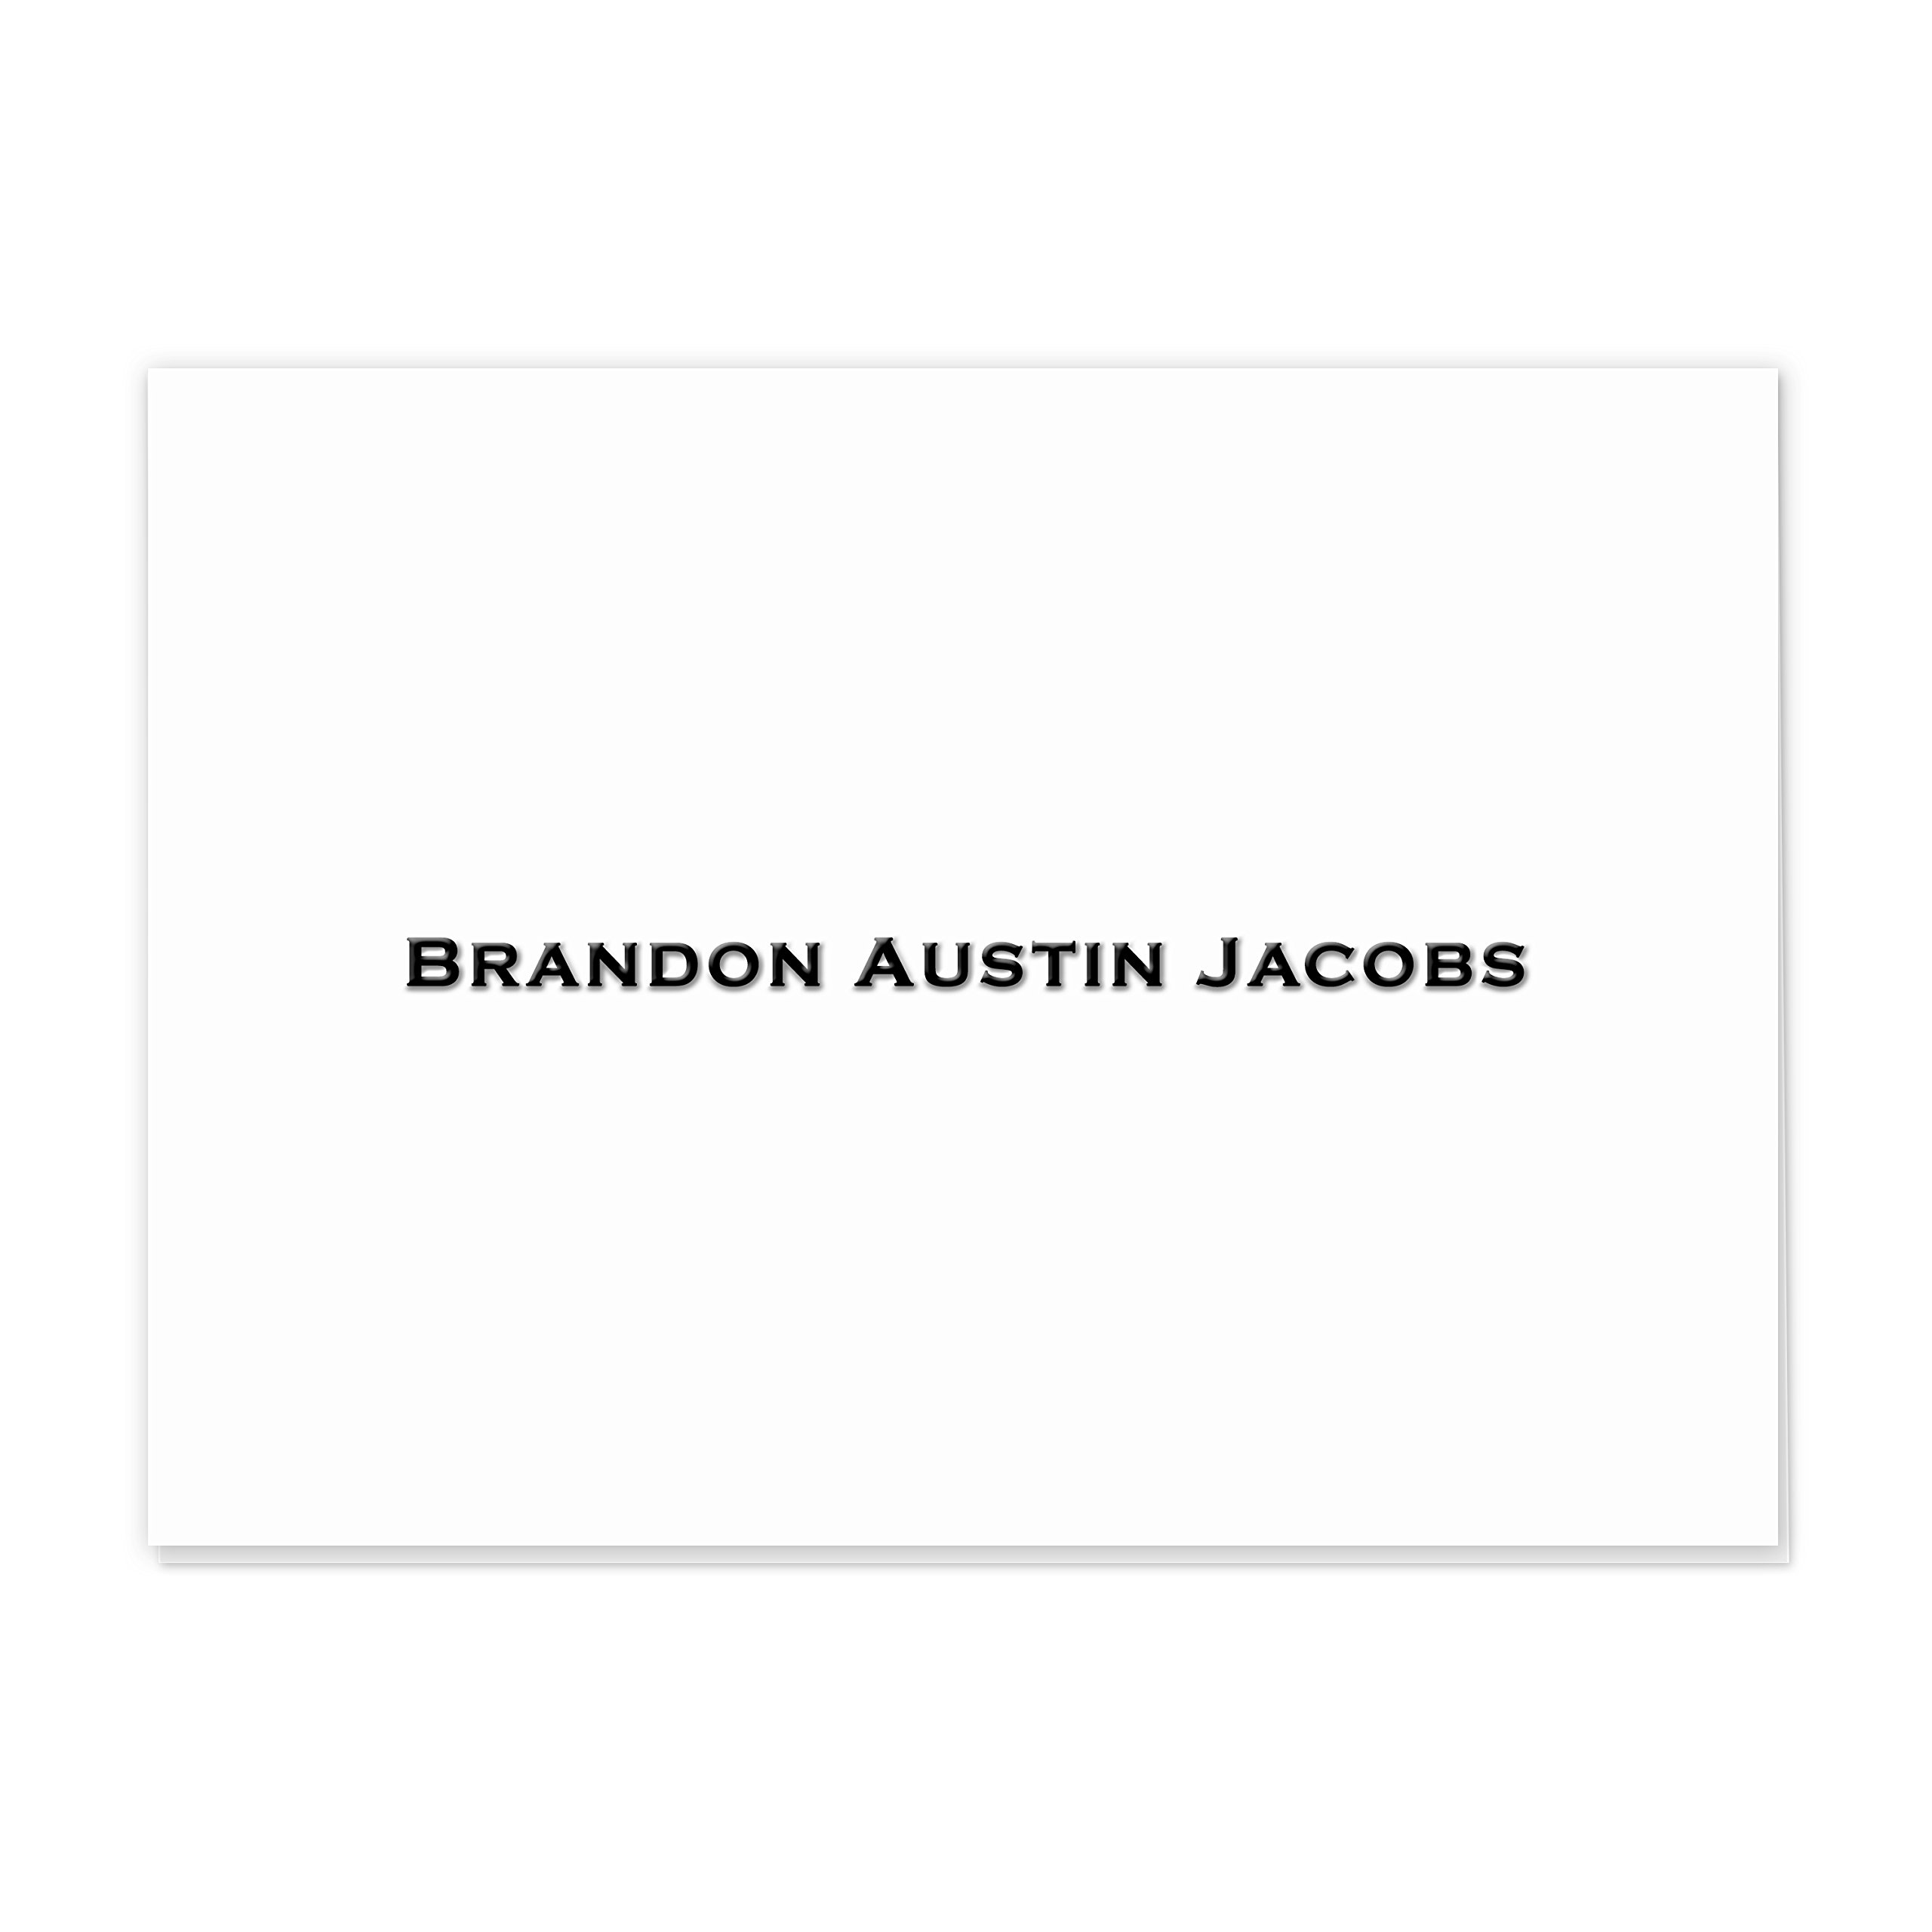 Engraved Folded Note Cards, Personalized, 4 1/4'' x 5 1/2'' , 50 Cards with 50 Matching Blank Envelopes